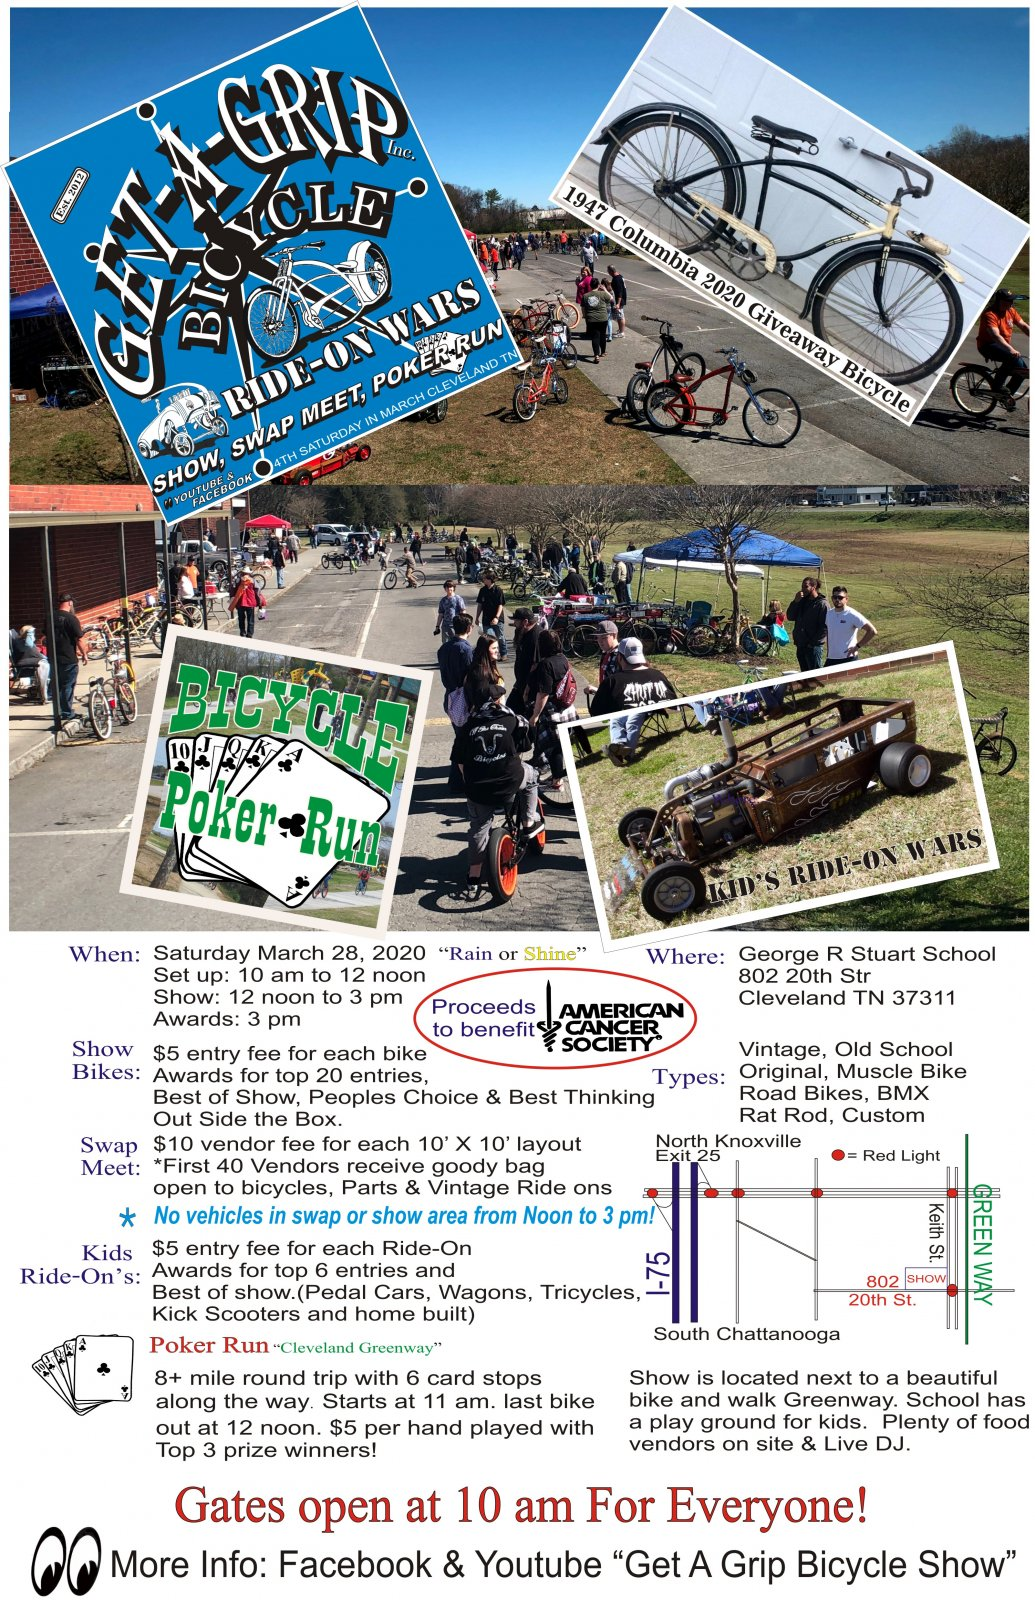 Bike Show 2020 Picture Poster 11X17.jpg